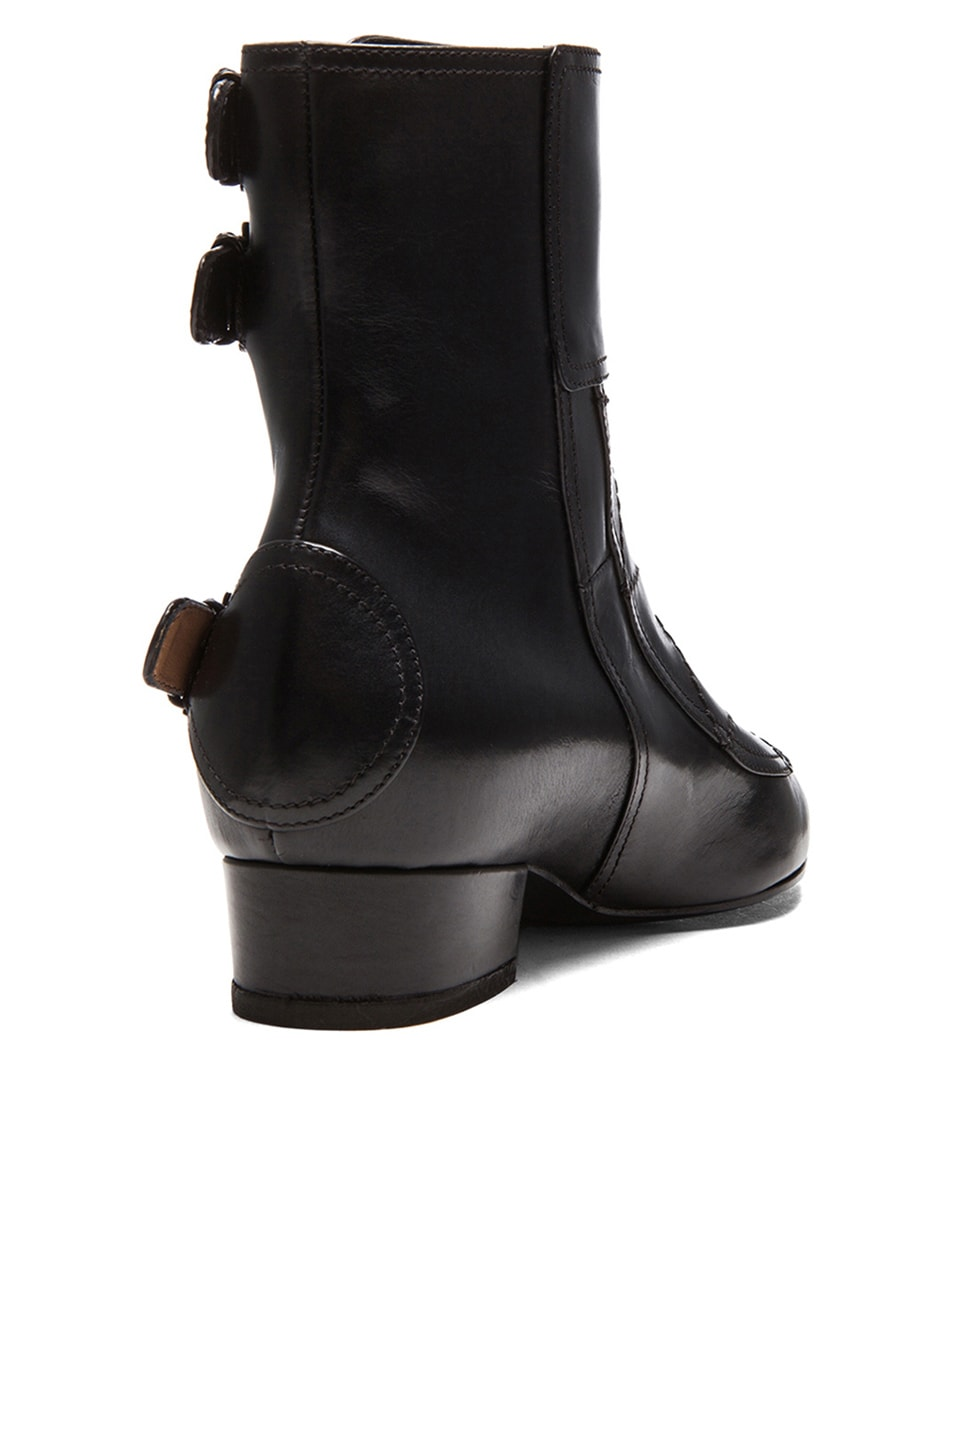 Image 3 of Laurence Dacade Gepetto Leather Booties in Black Leather